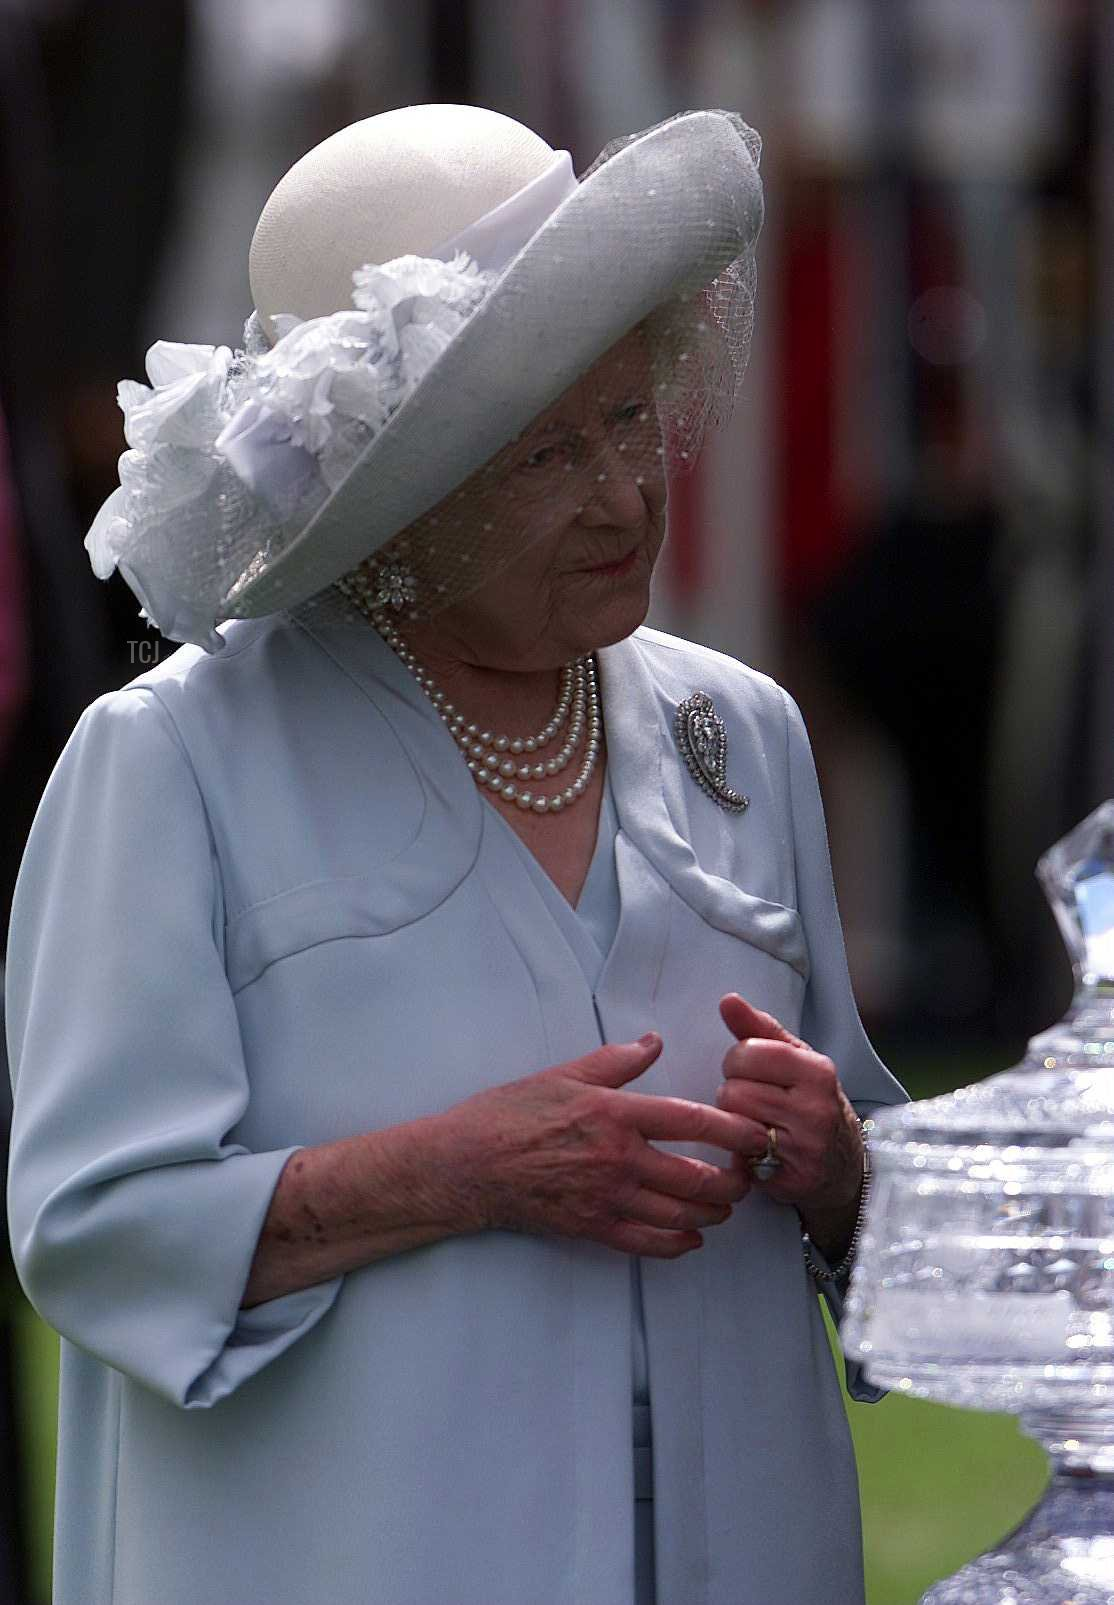 24 Jun 2000: The Queen Mother with the trophy she presented to Julie Fallon representing her husband Kieren who was named top jockey with 4 wins at the recent Royal Meeting at Ascot